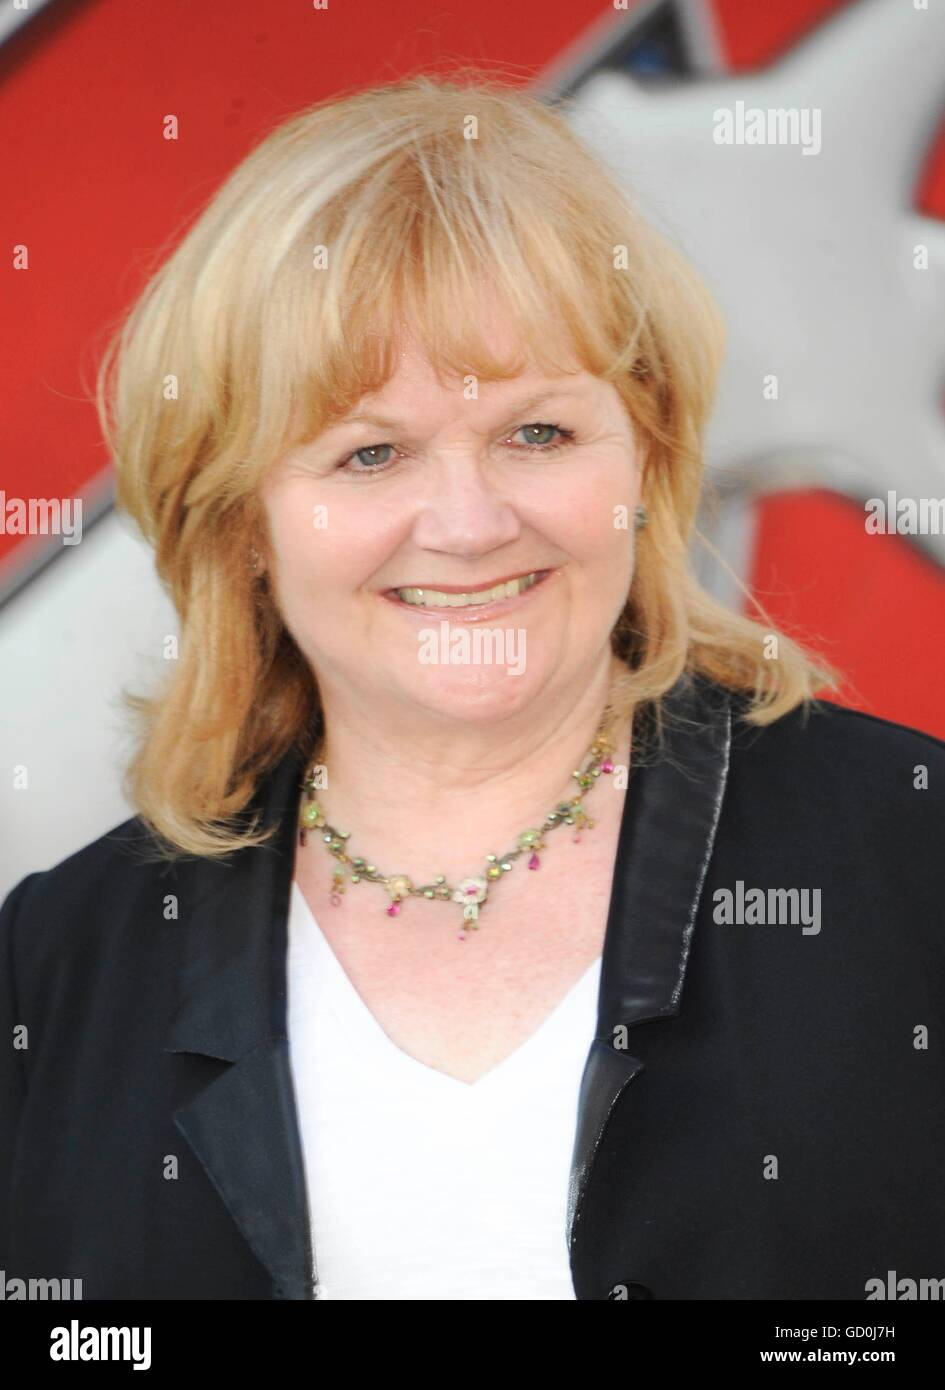 Los Angeles, CA, USA. 9th July, 2016. Lesley Nicol at arrivals for GHOSTBUSTERS Premiere, TCL Chinese 6 Theatres - Stock Image